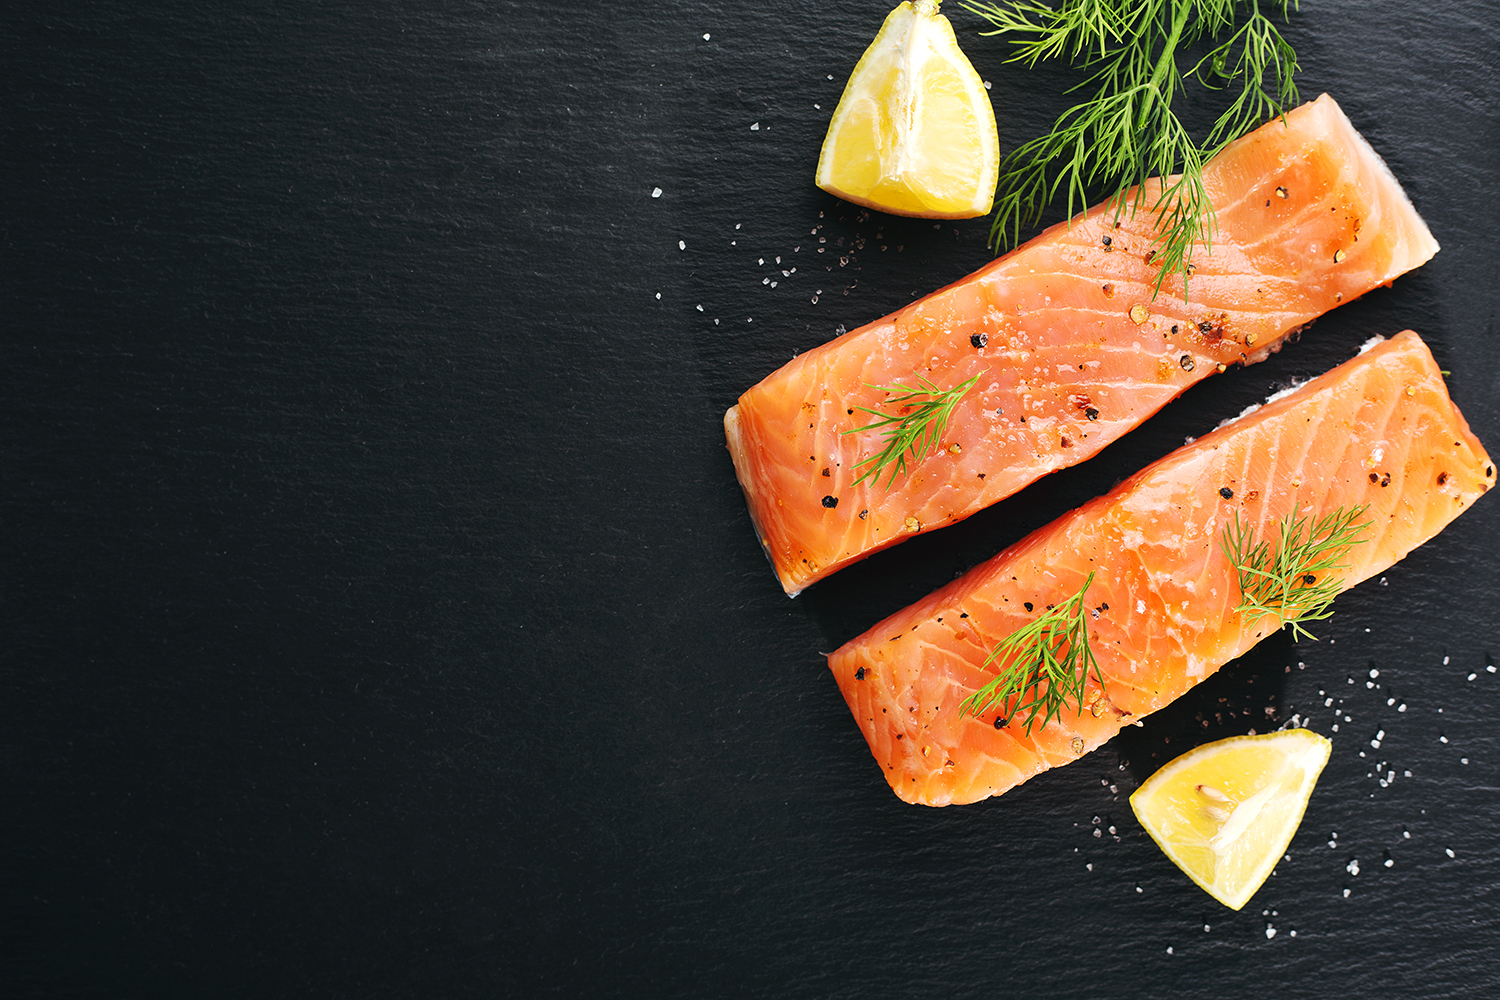 Raw Fresh Tasty Salmon Steaks Placed On Black Slate With Ingredients. Ready To Cook. Slate Background. Horizontal With Copy Space